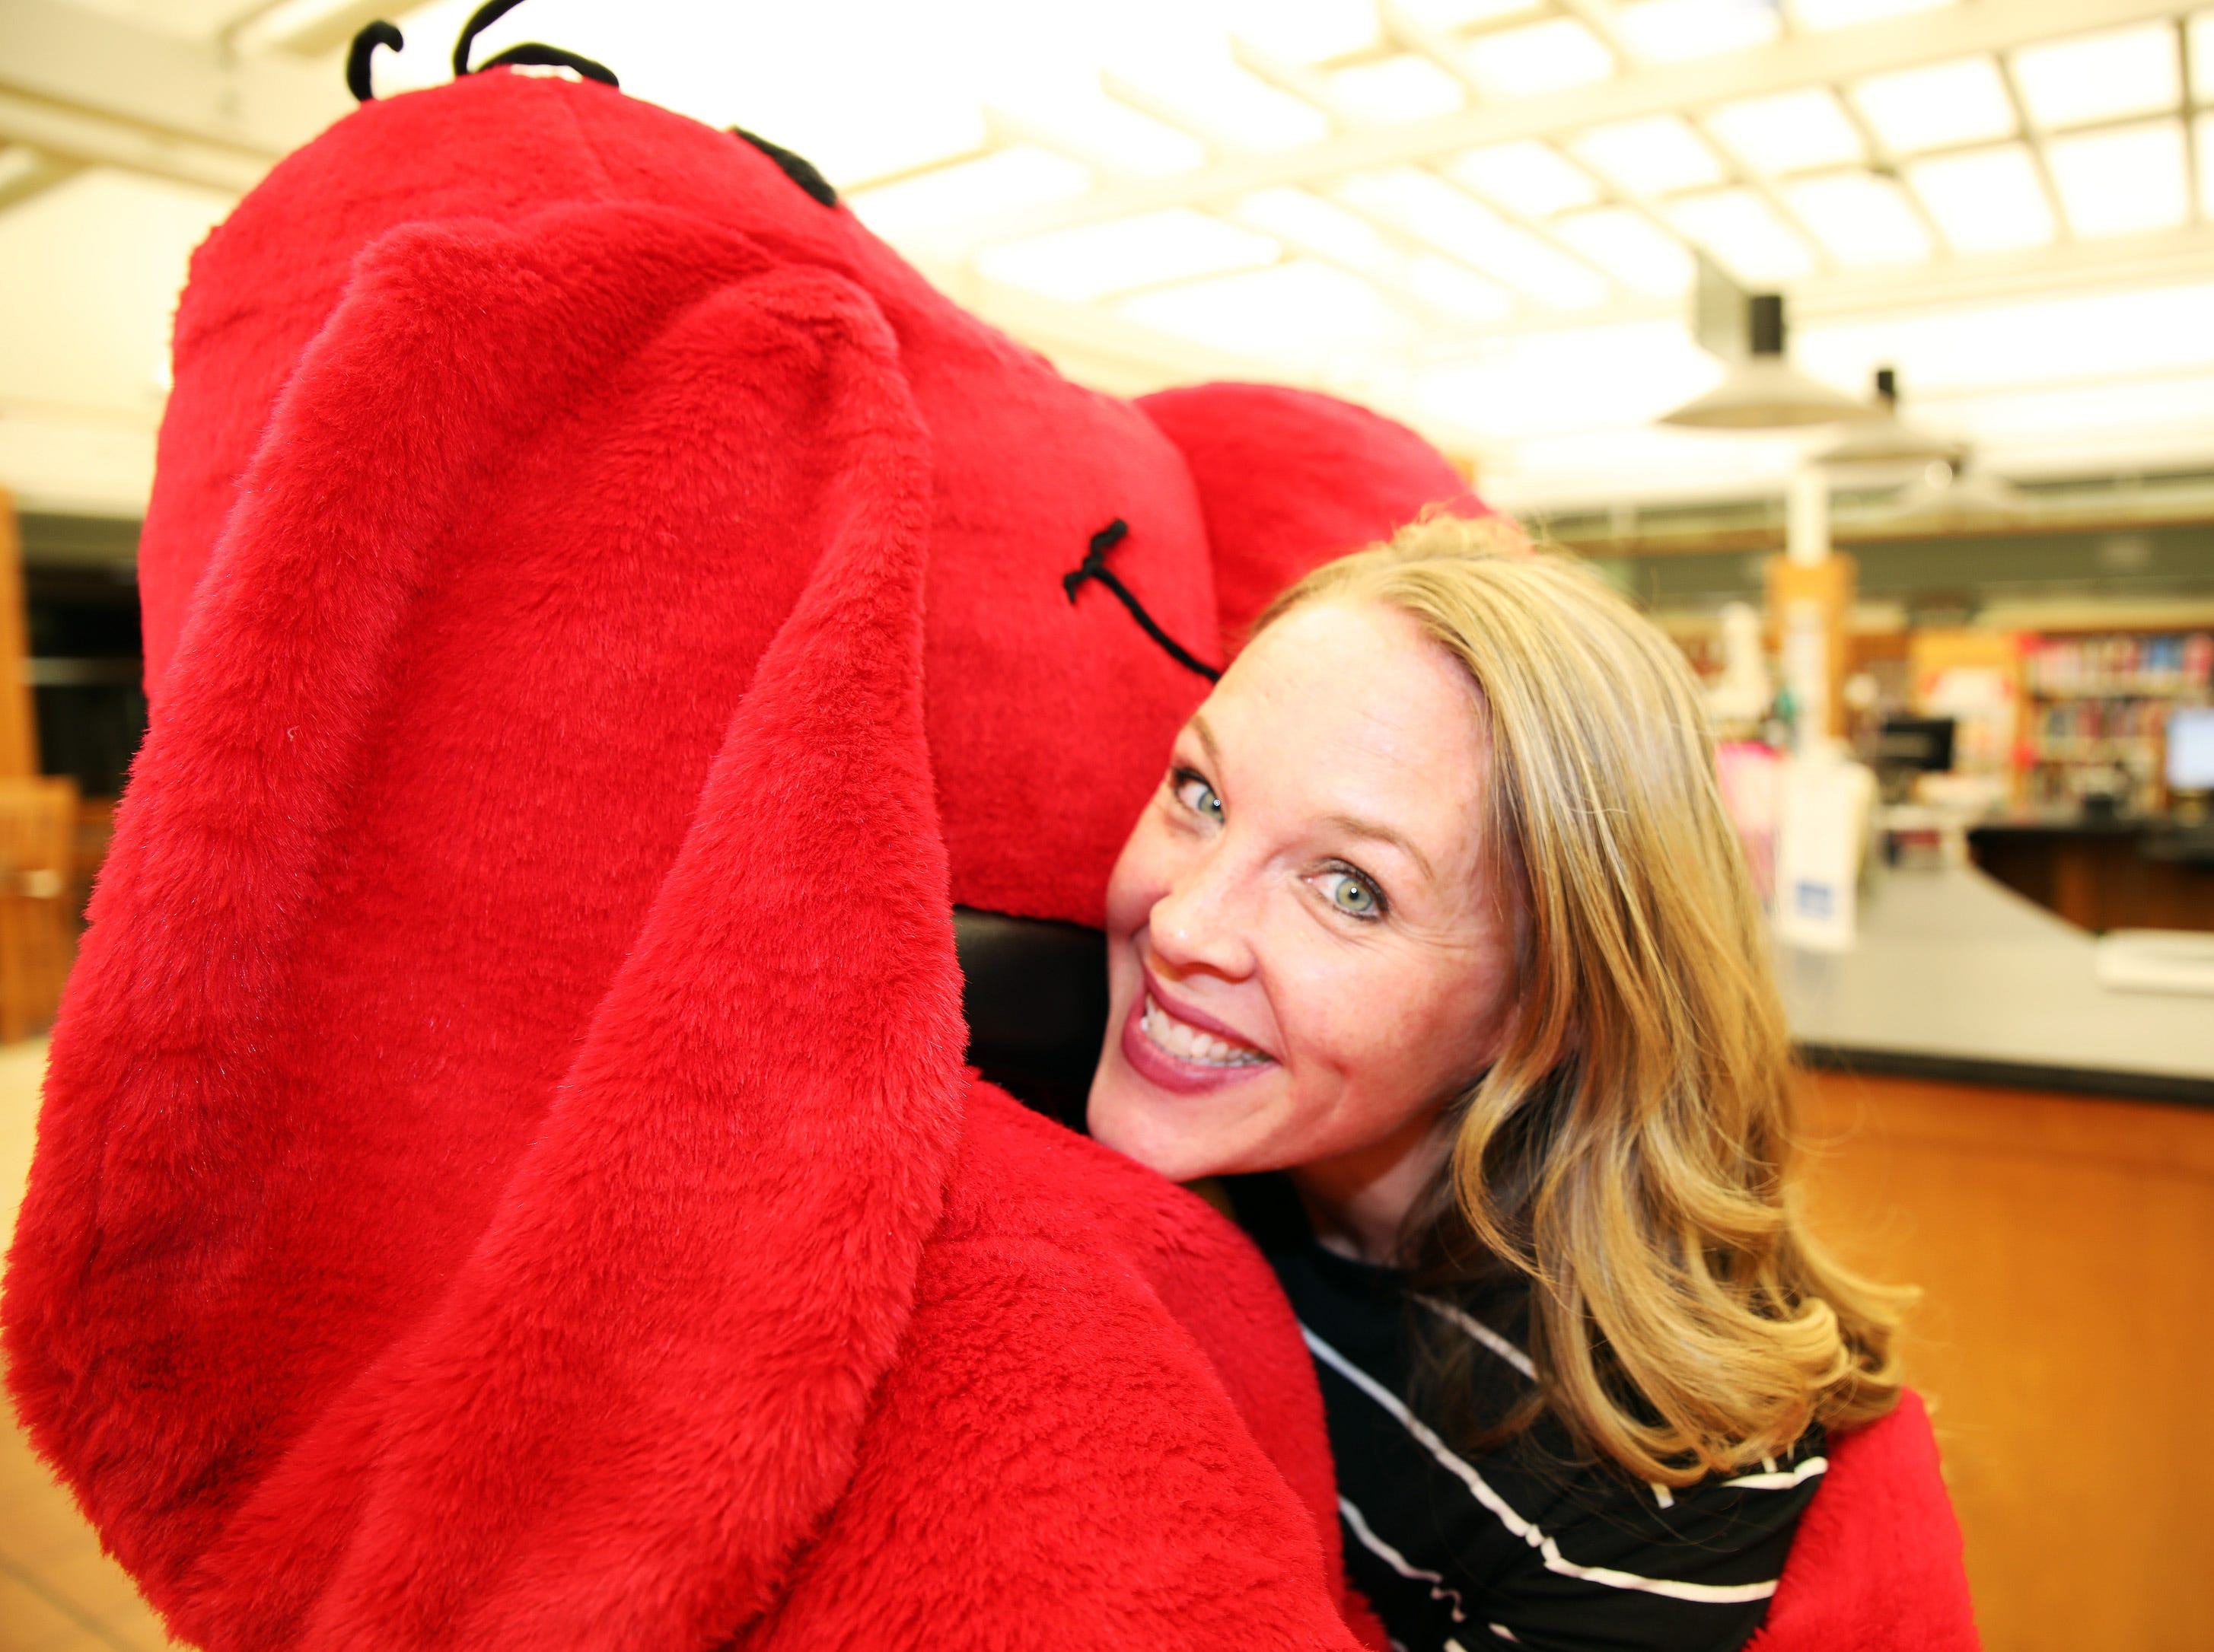 Children's Librarian Kelly Munter receives a big hug from Clifford the Big Red Dog during his birthday party at Kirkendall Public Library in Ankeny on Tuesday, Feb. 5, 2019. The long-running series of books about Clifford began in 1963 by author Norman Bridwell.